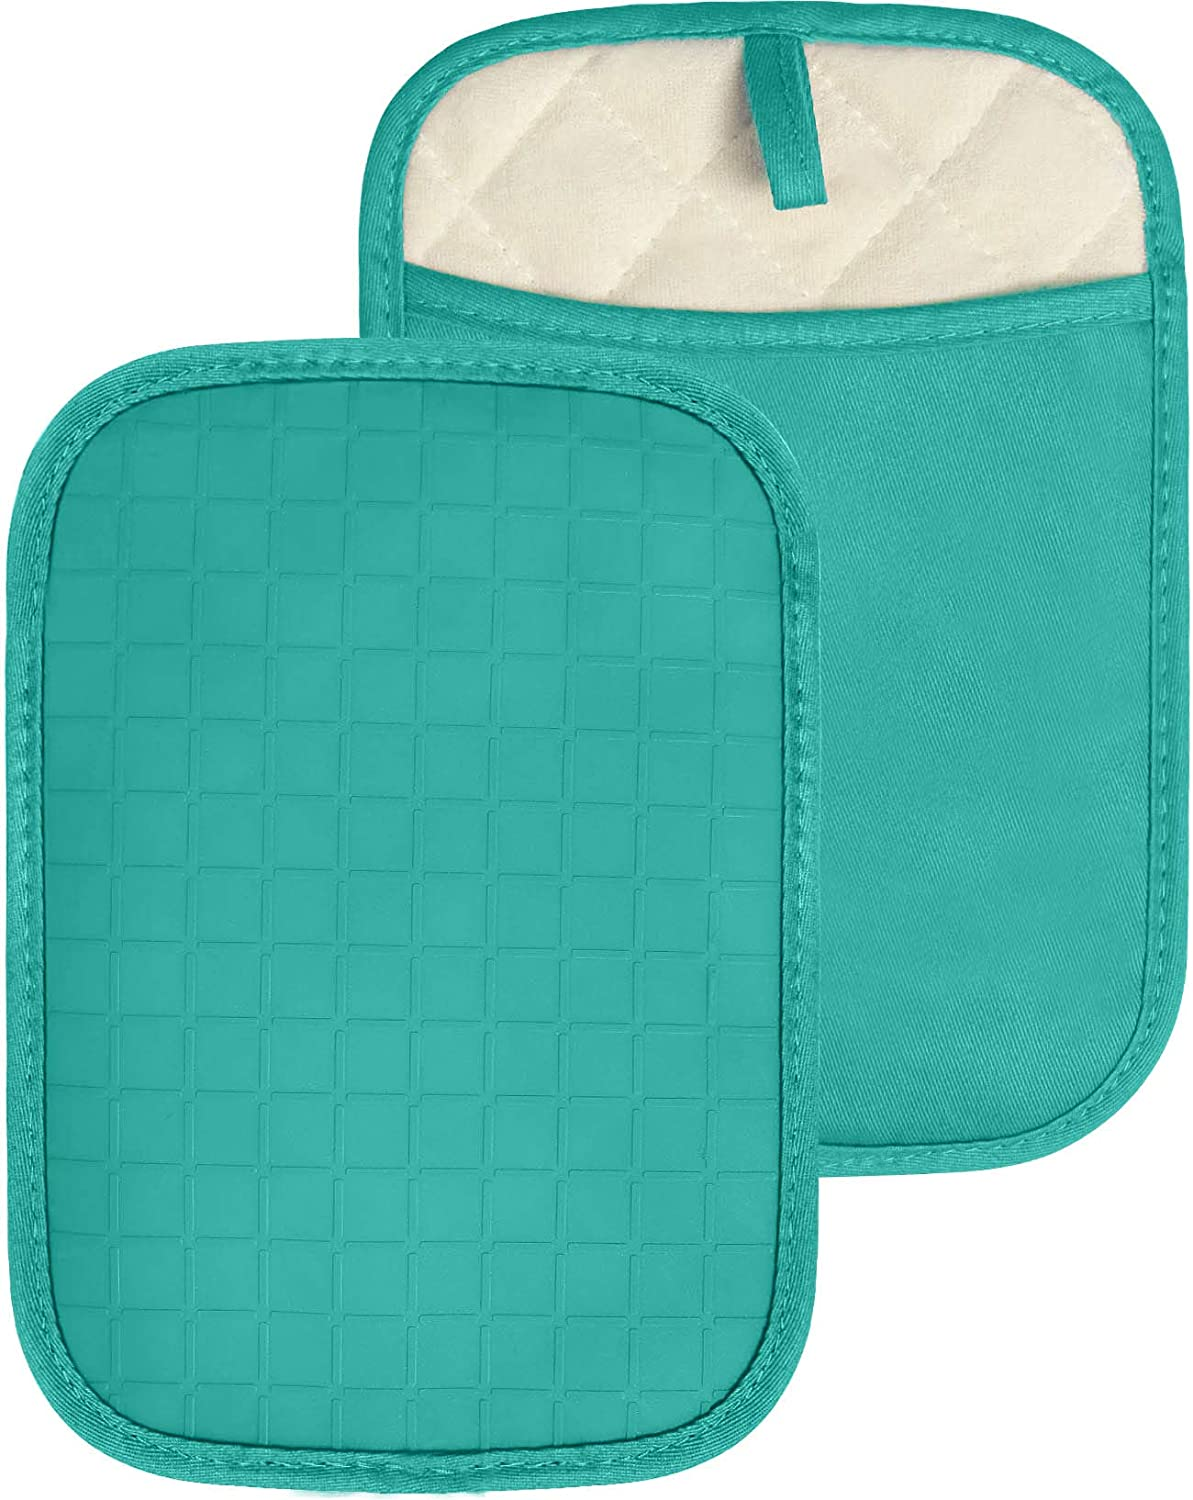 HOMWE New sales Easy-to-use Silicone Kitchen Pot Holders with Pc Set 2 Pockets Trivet